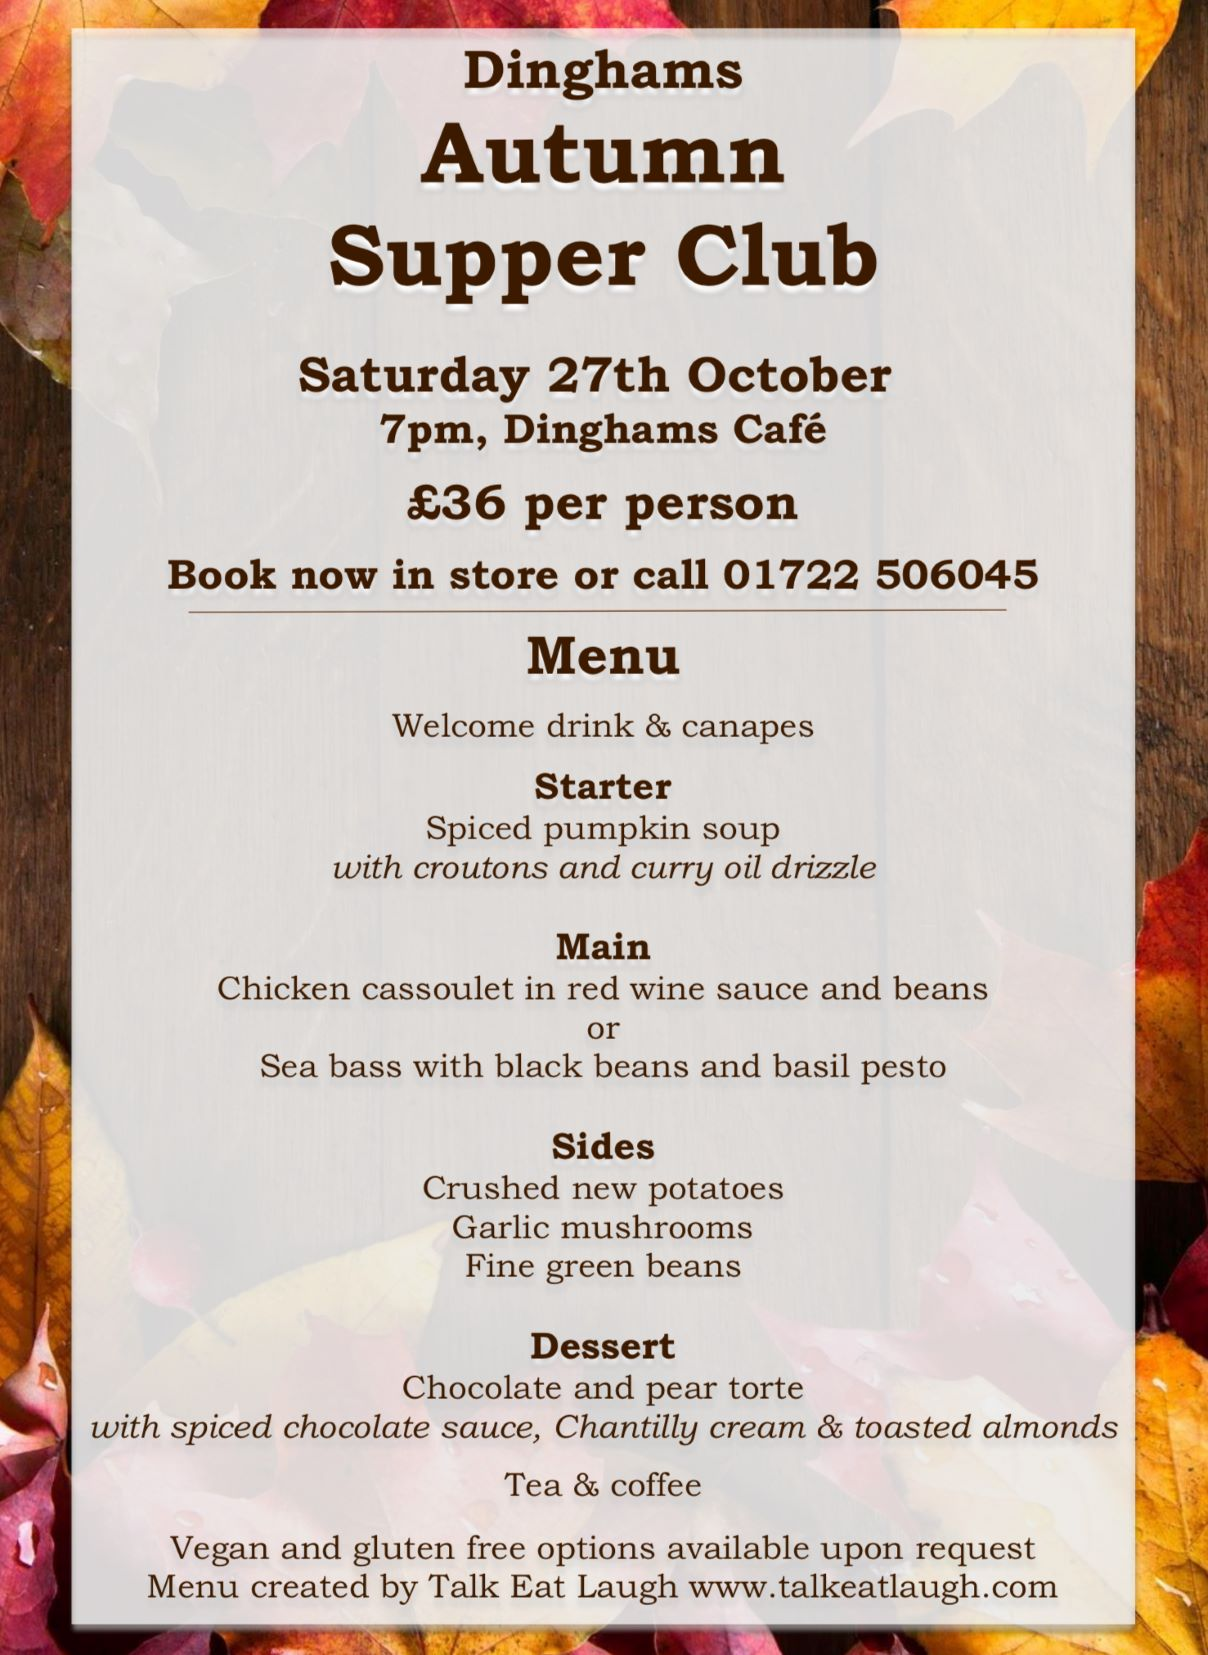 Supper Club with Dinghams, 27th October